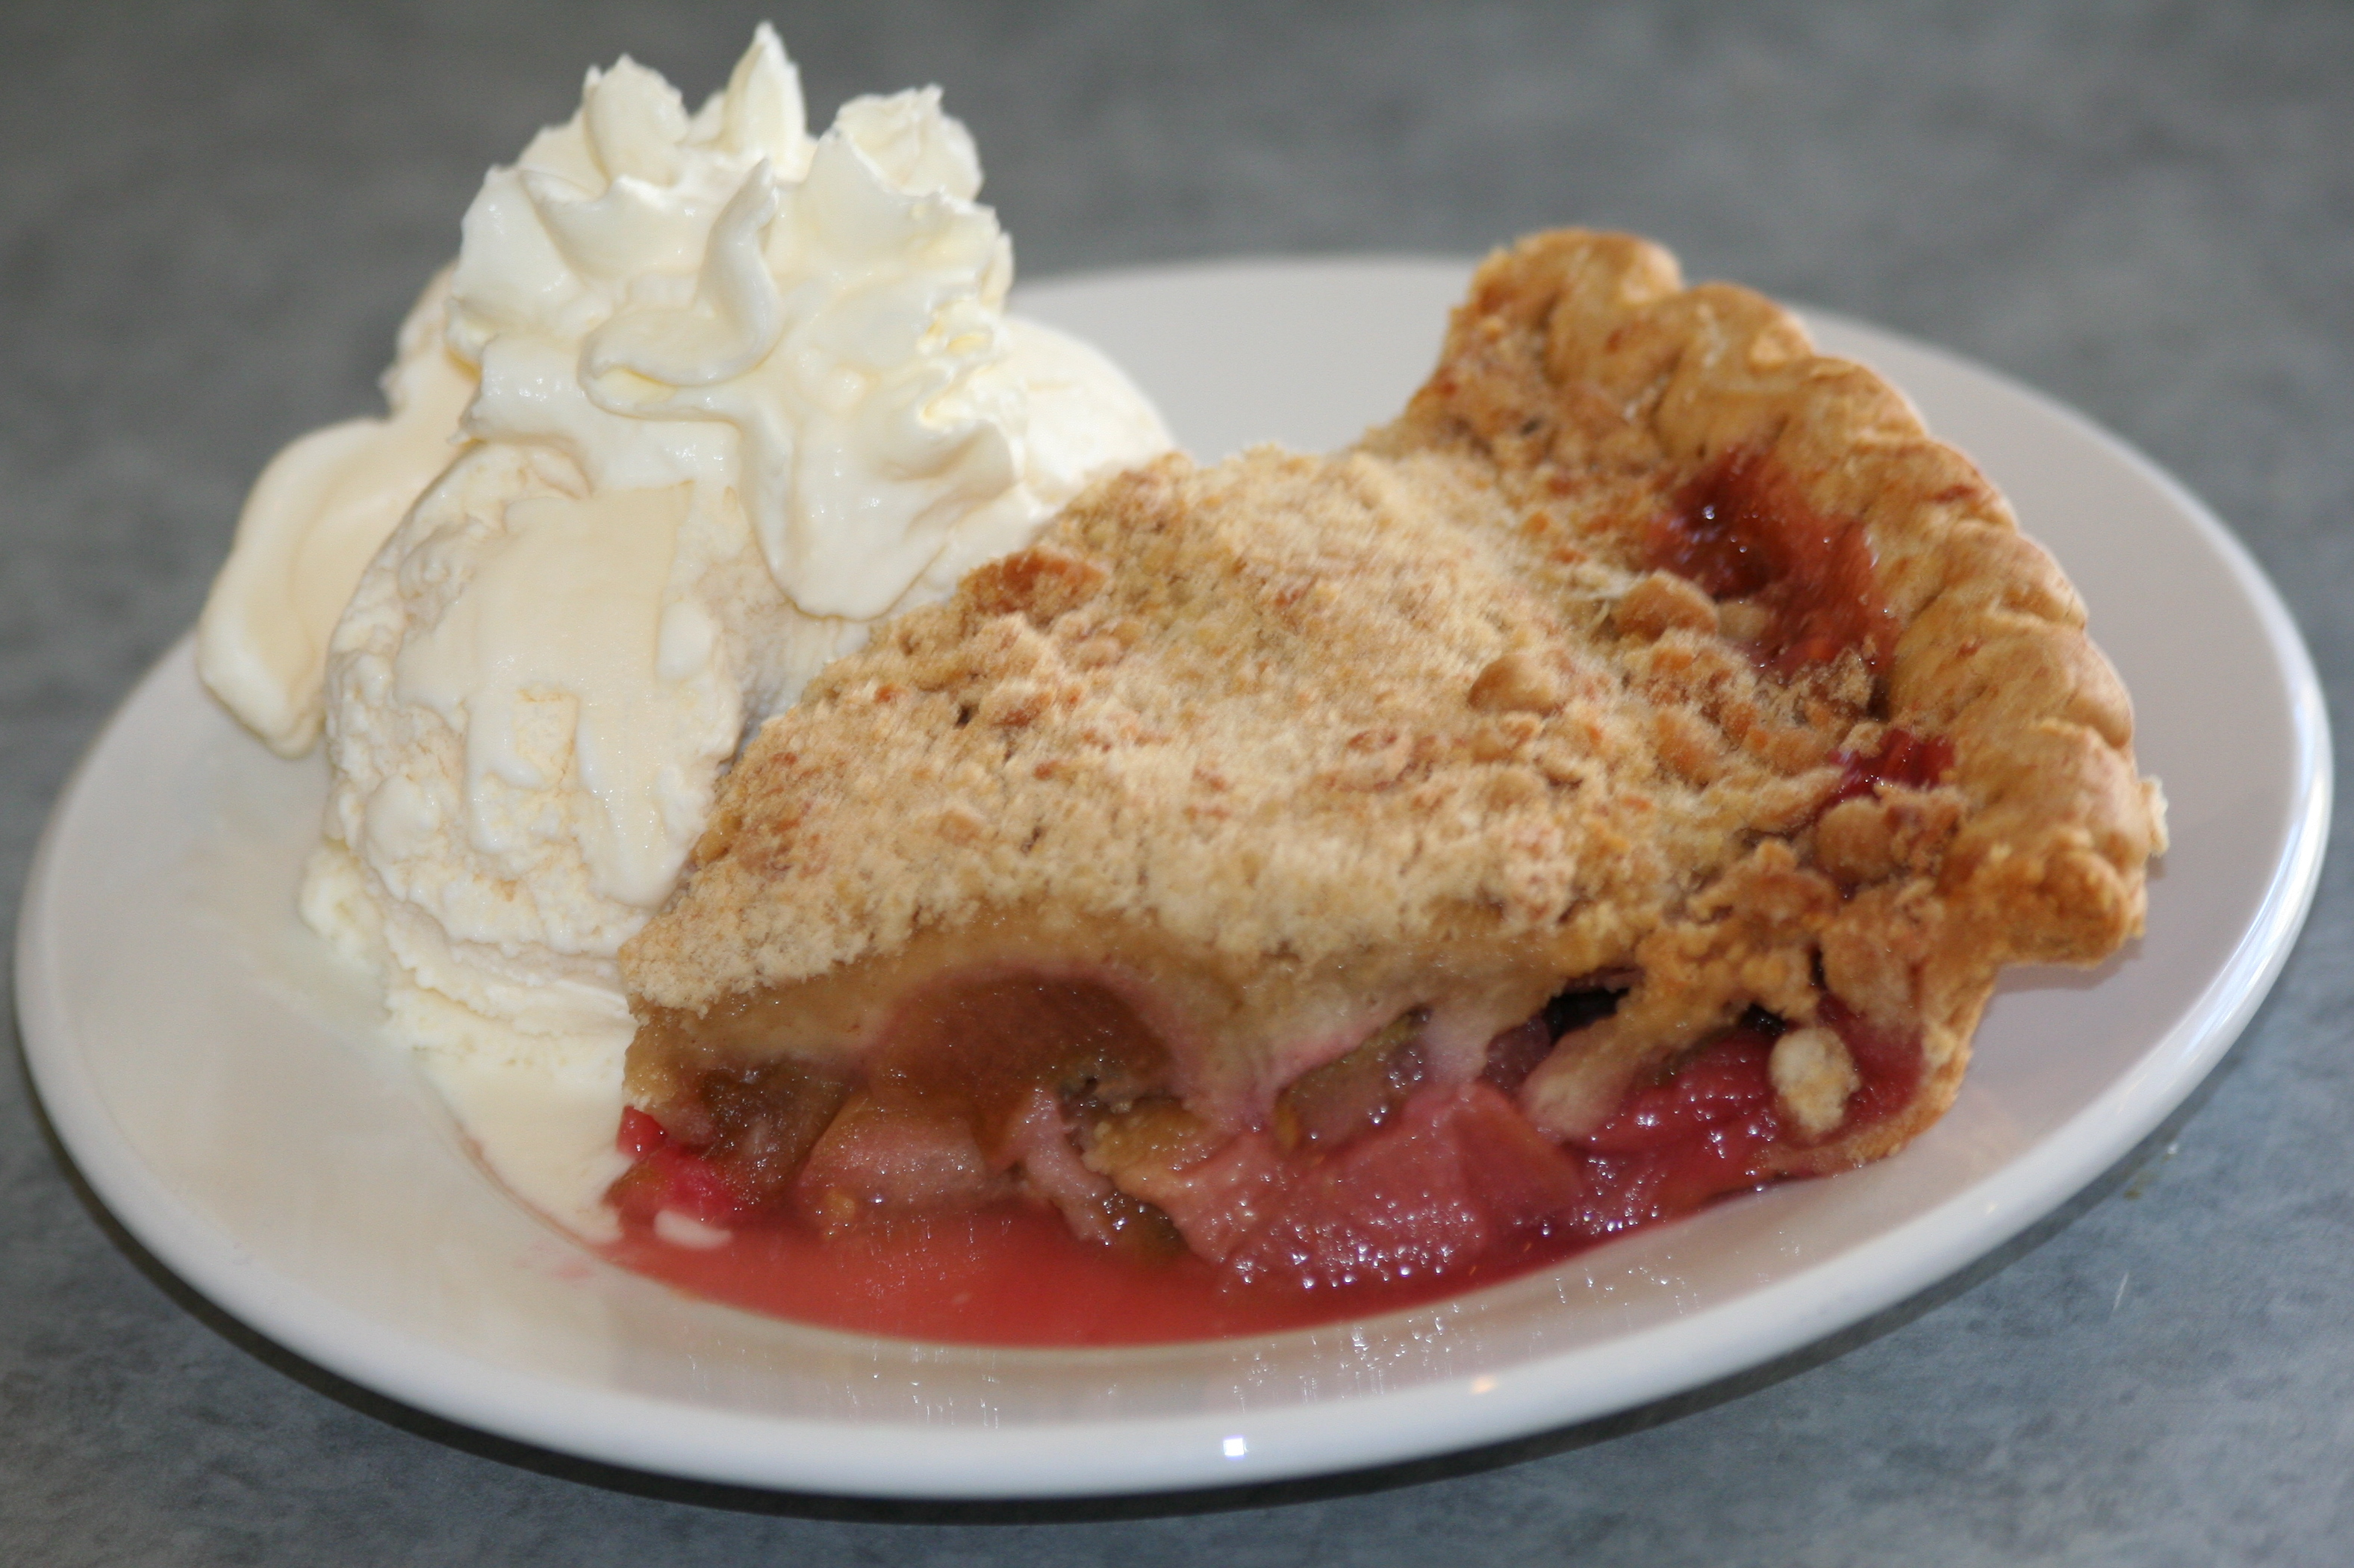 slice of rhubarb pie details type pie variations pie crust rhubarb ...